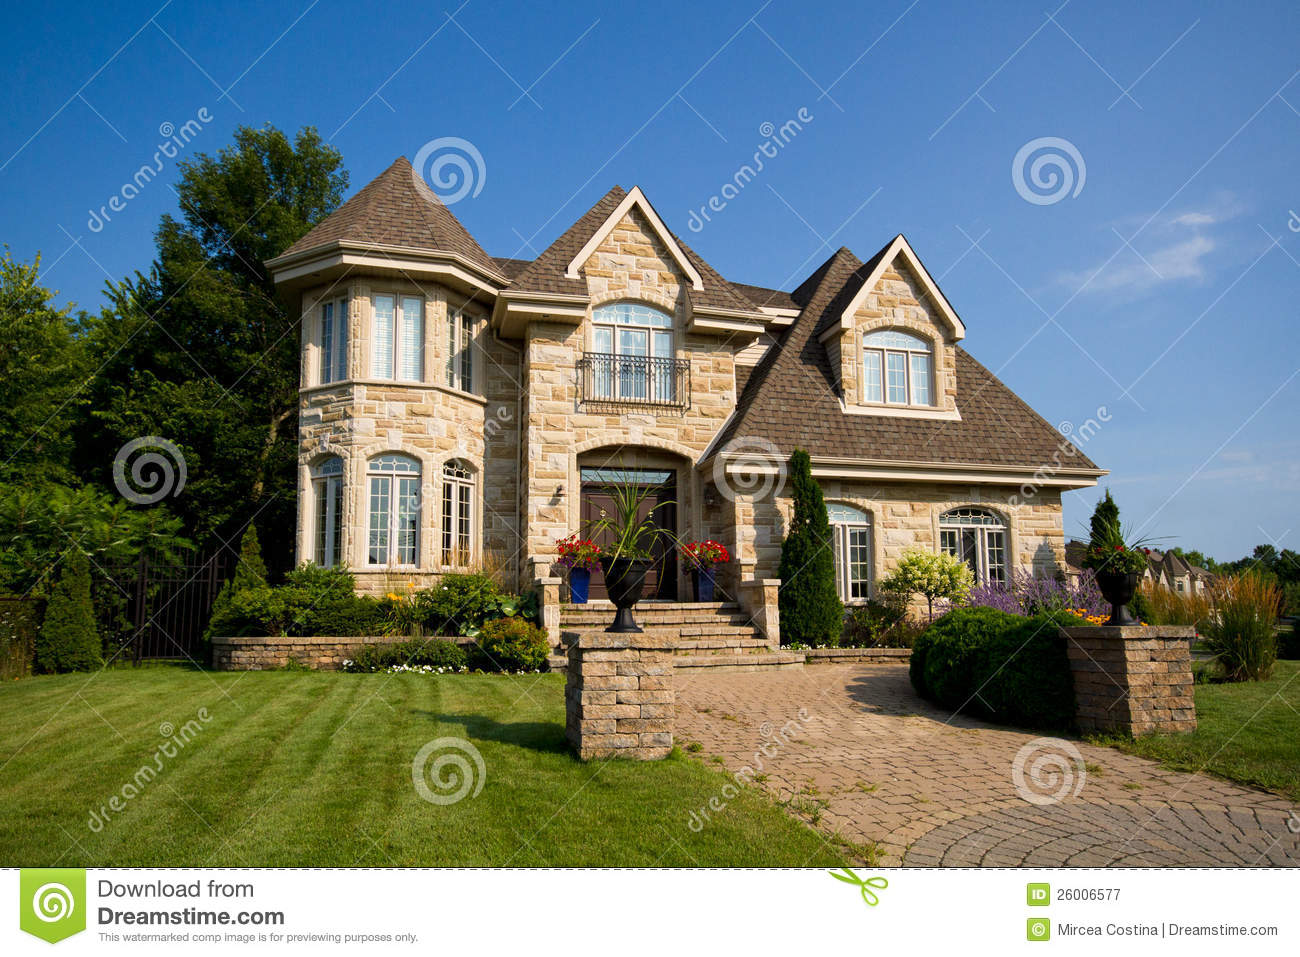 Royalty free stock photography big house image 26006577 for Big house images